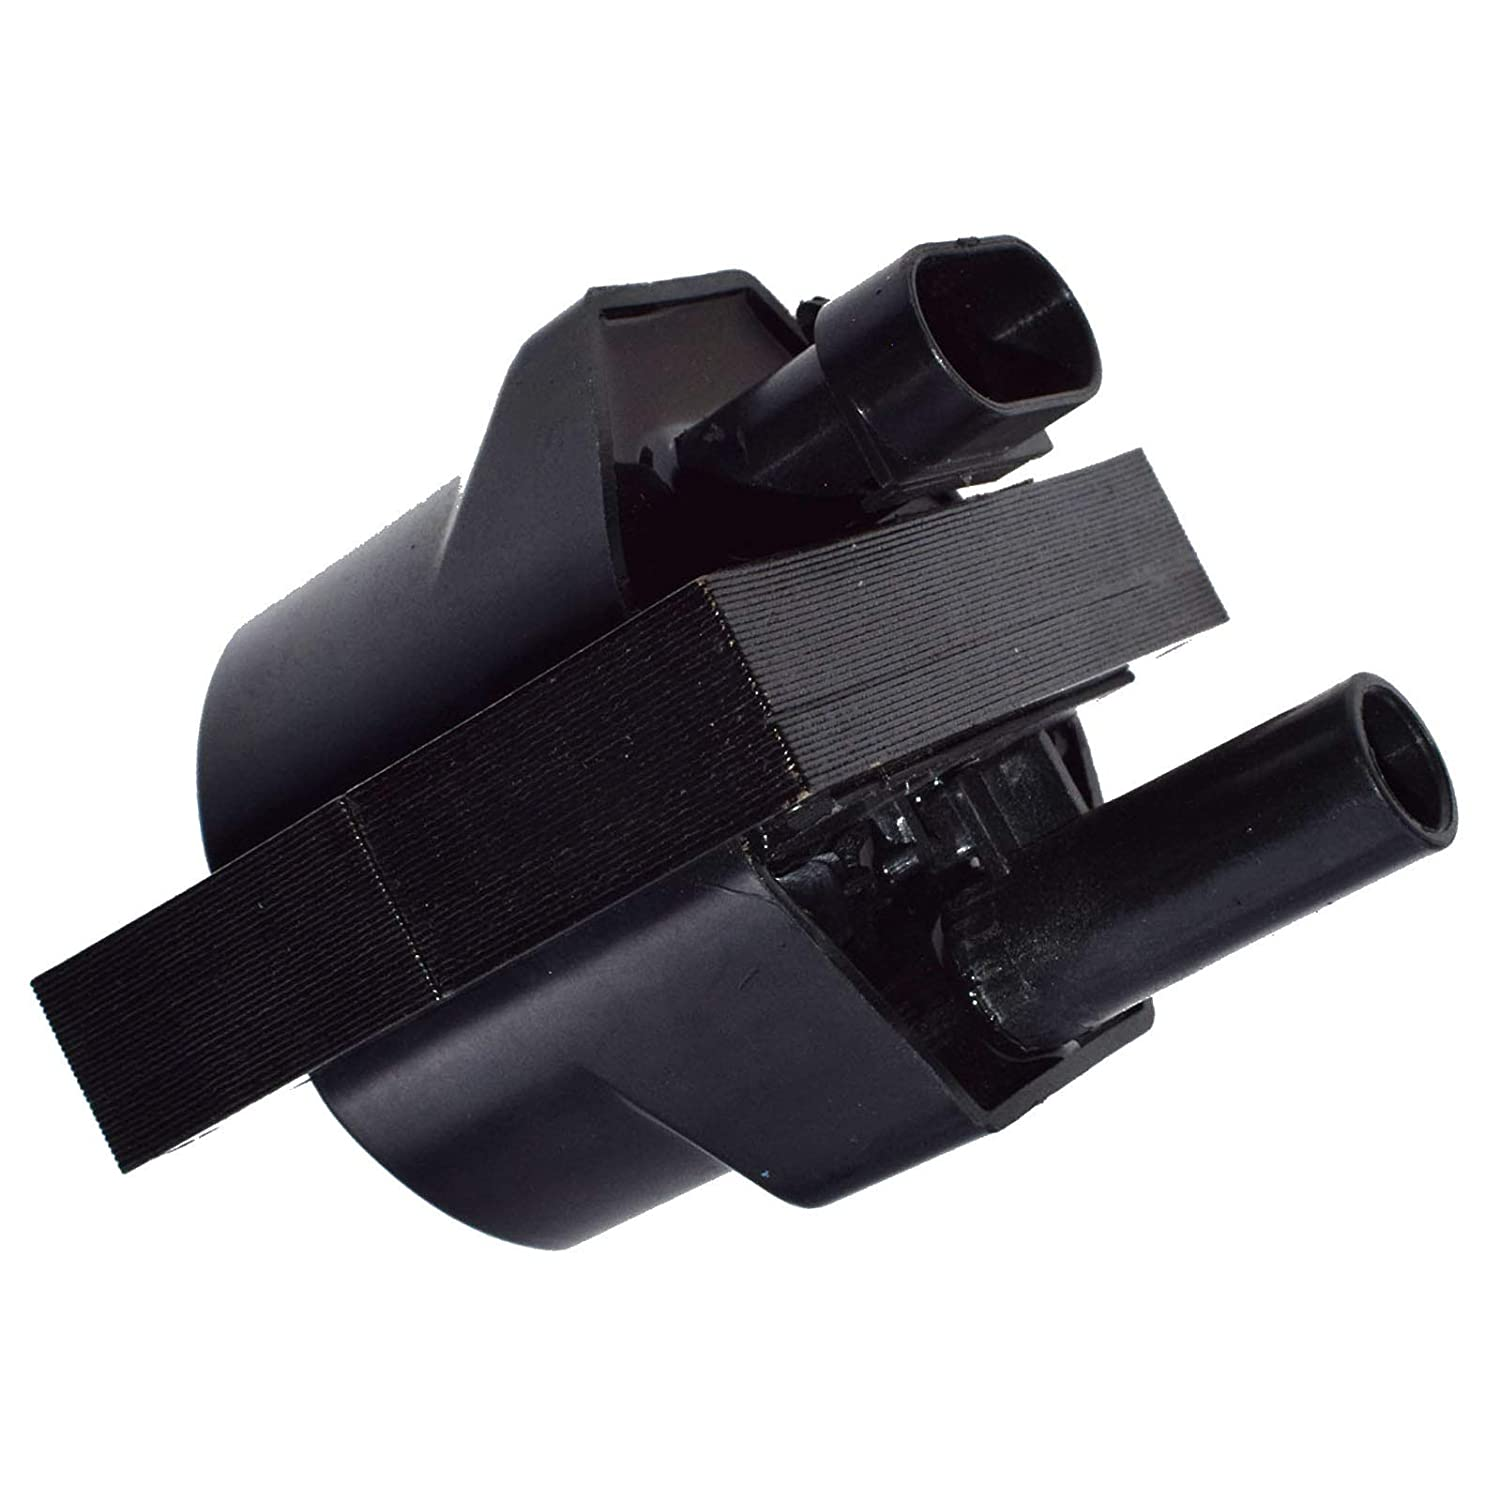 D577 Ignition Coil replace GM 10489421 DR49 for Chevrolet Cadillac GMC Yukon V6 V8 Models 1996-2005 High Performance Ignition Coil